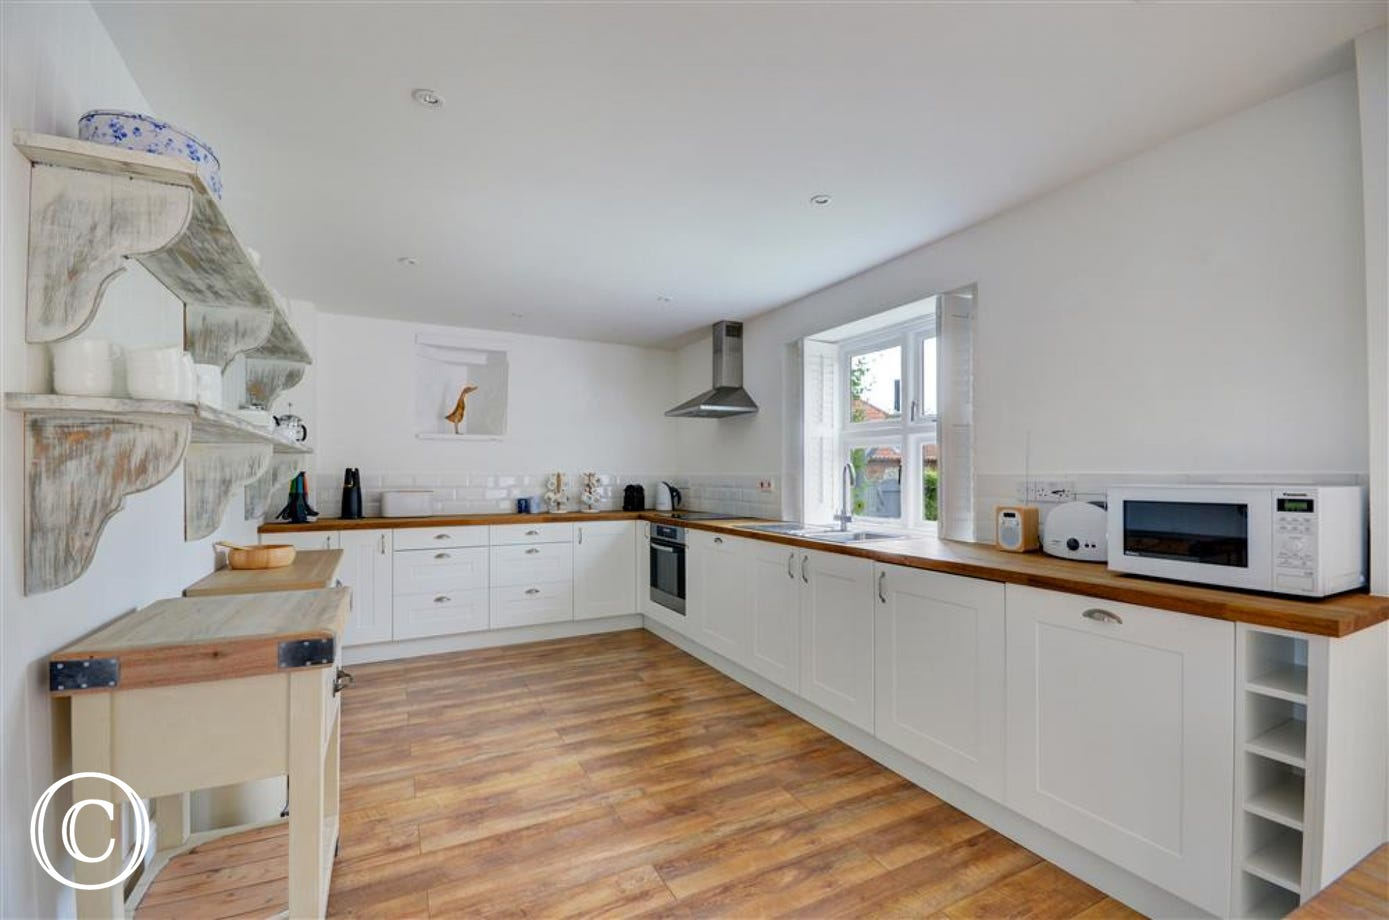 Spacious and well quipped kitchen